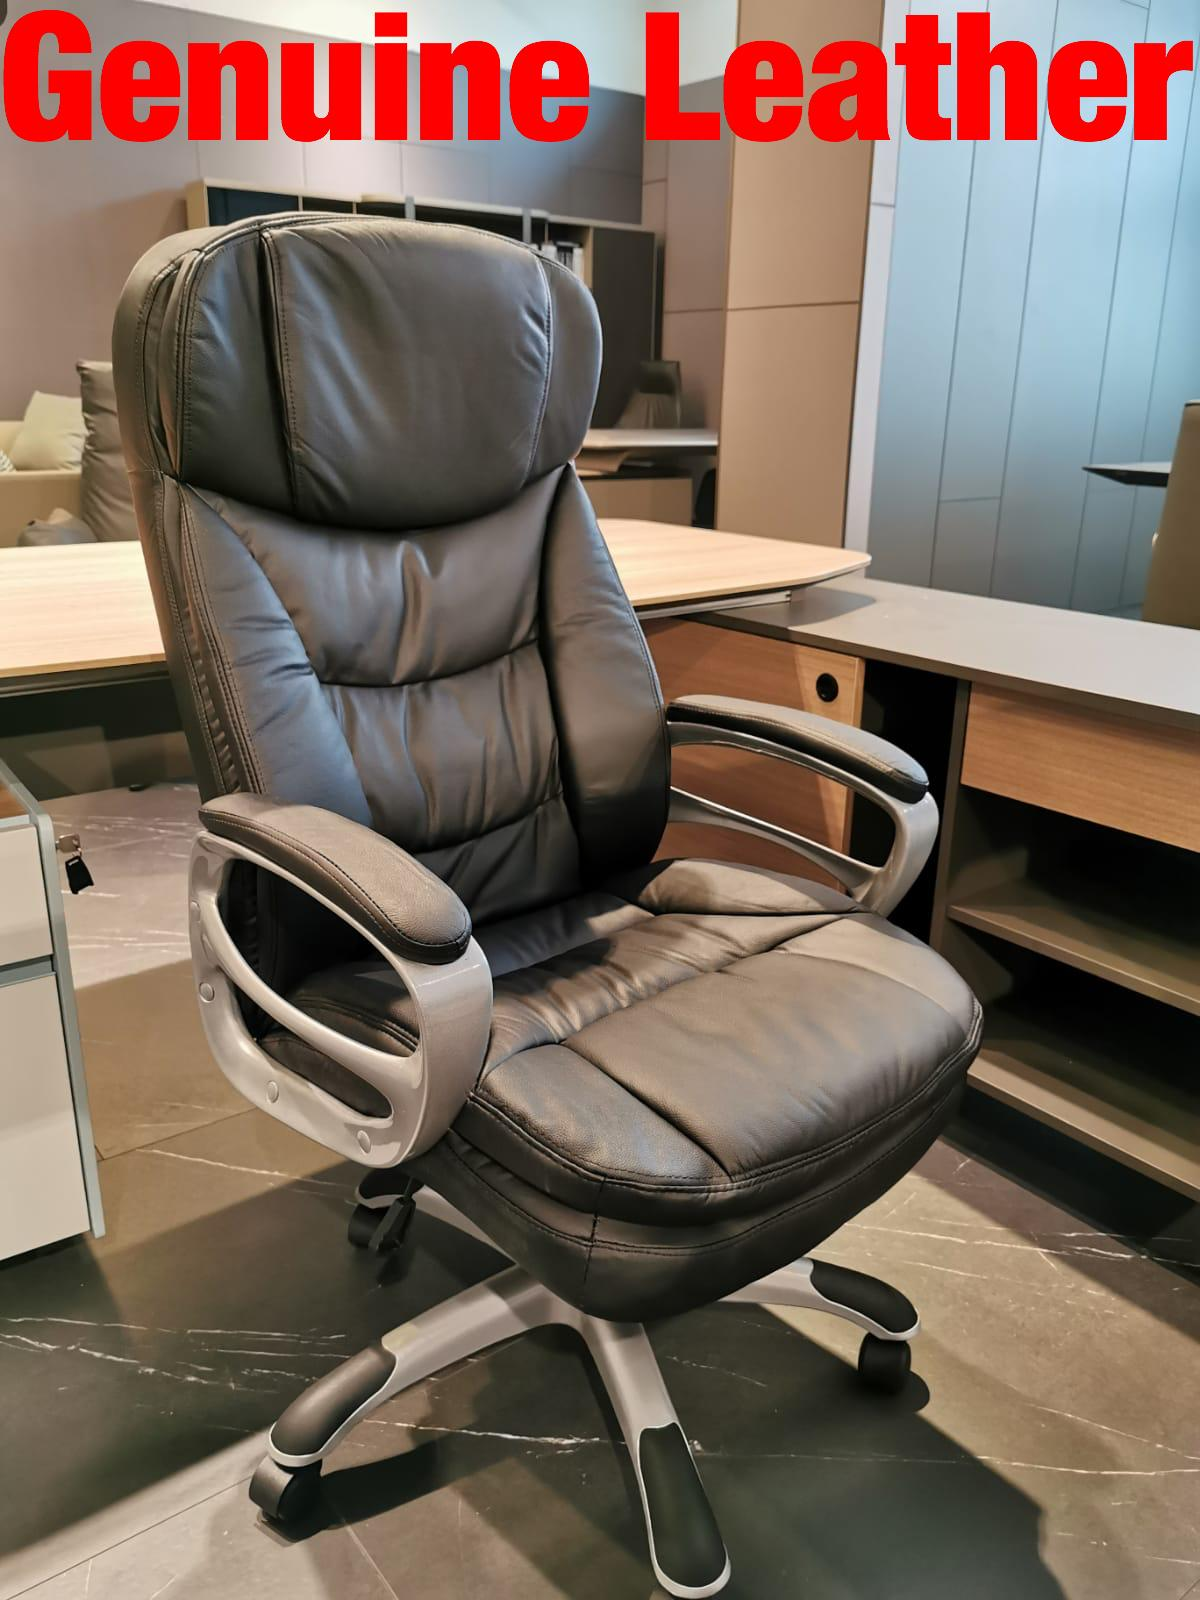 UMD Genuine Leather Boss Chair 7558/338/501/504 (1 Year Warranty & Free Installation) Singapore